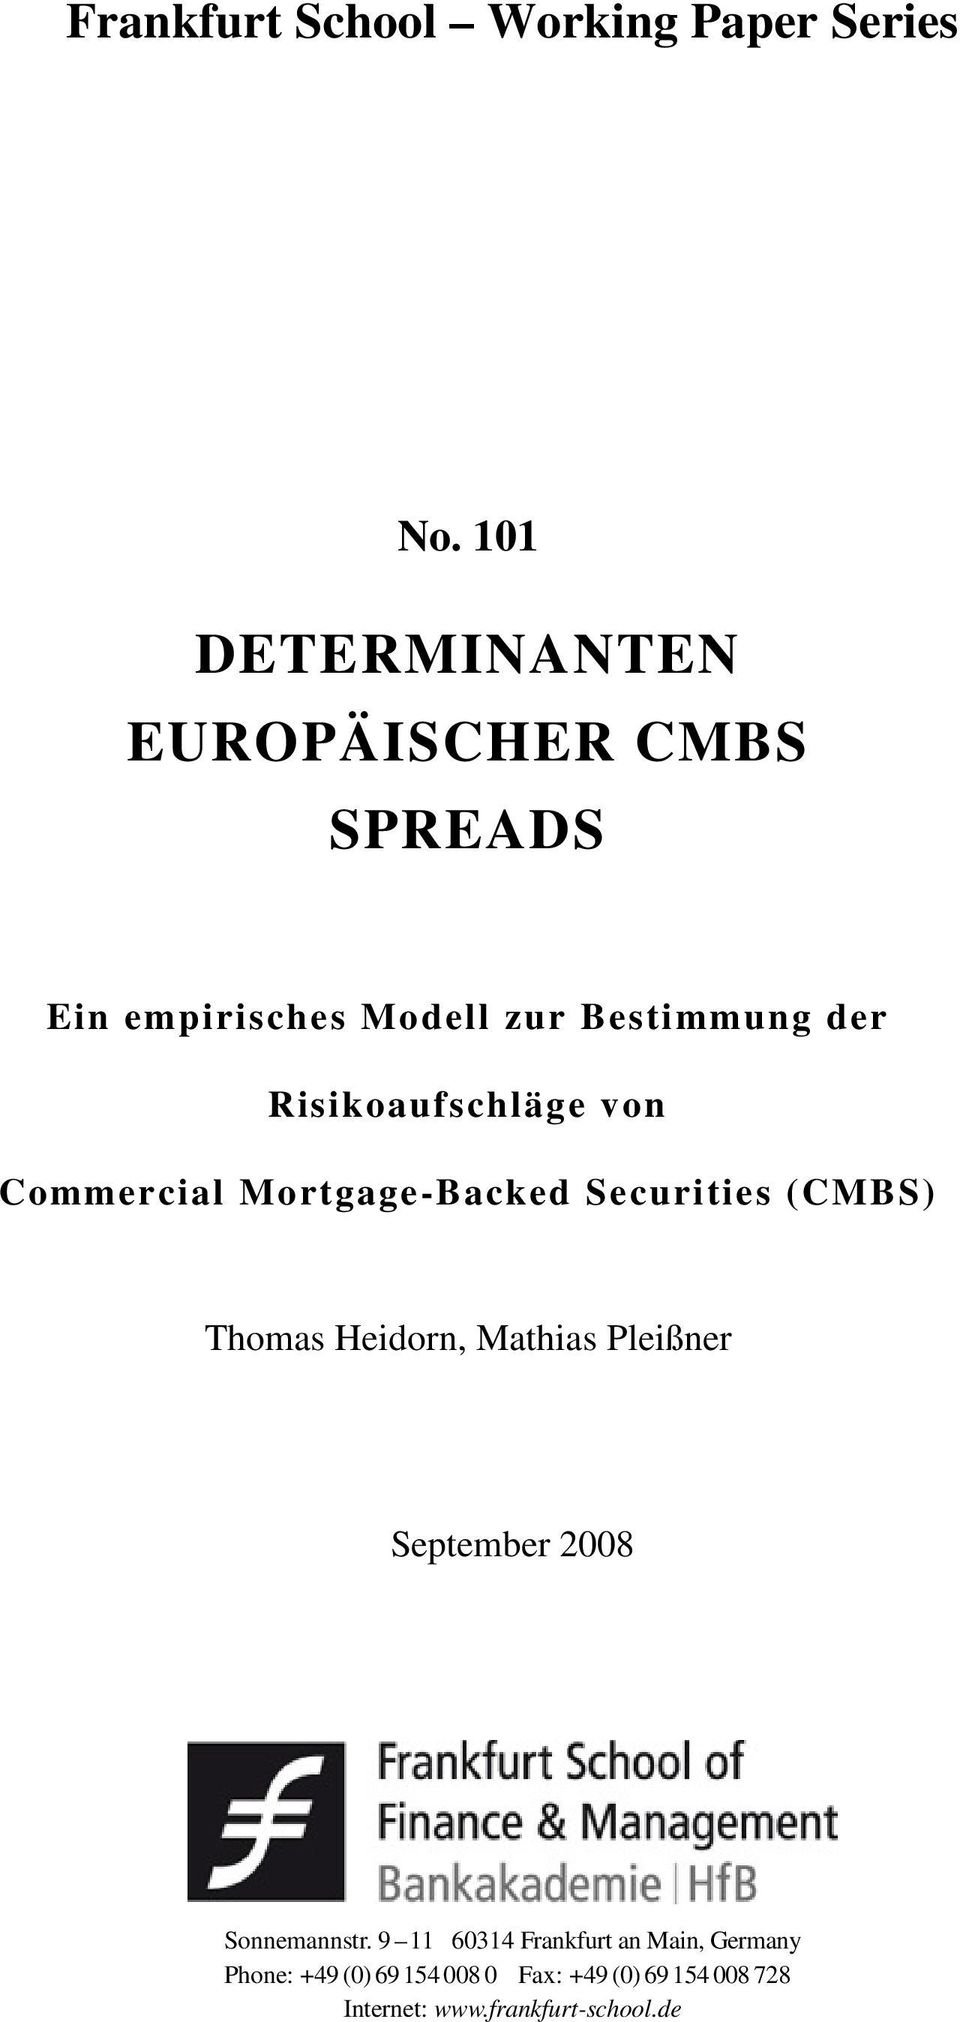 Risikoaufschläge von Commercial Mortgage-Backed Securities (CMBS) Thomas Heidorn, Mathias